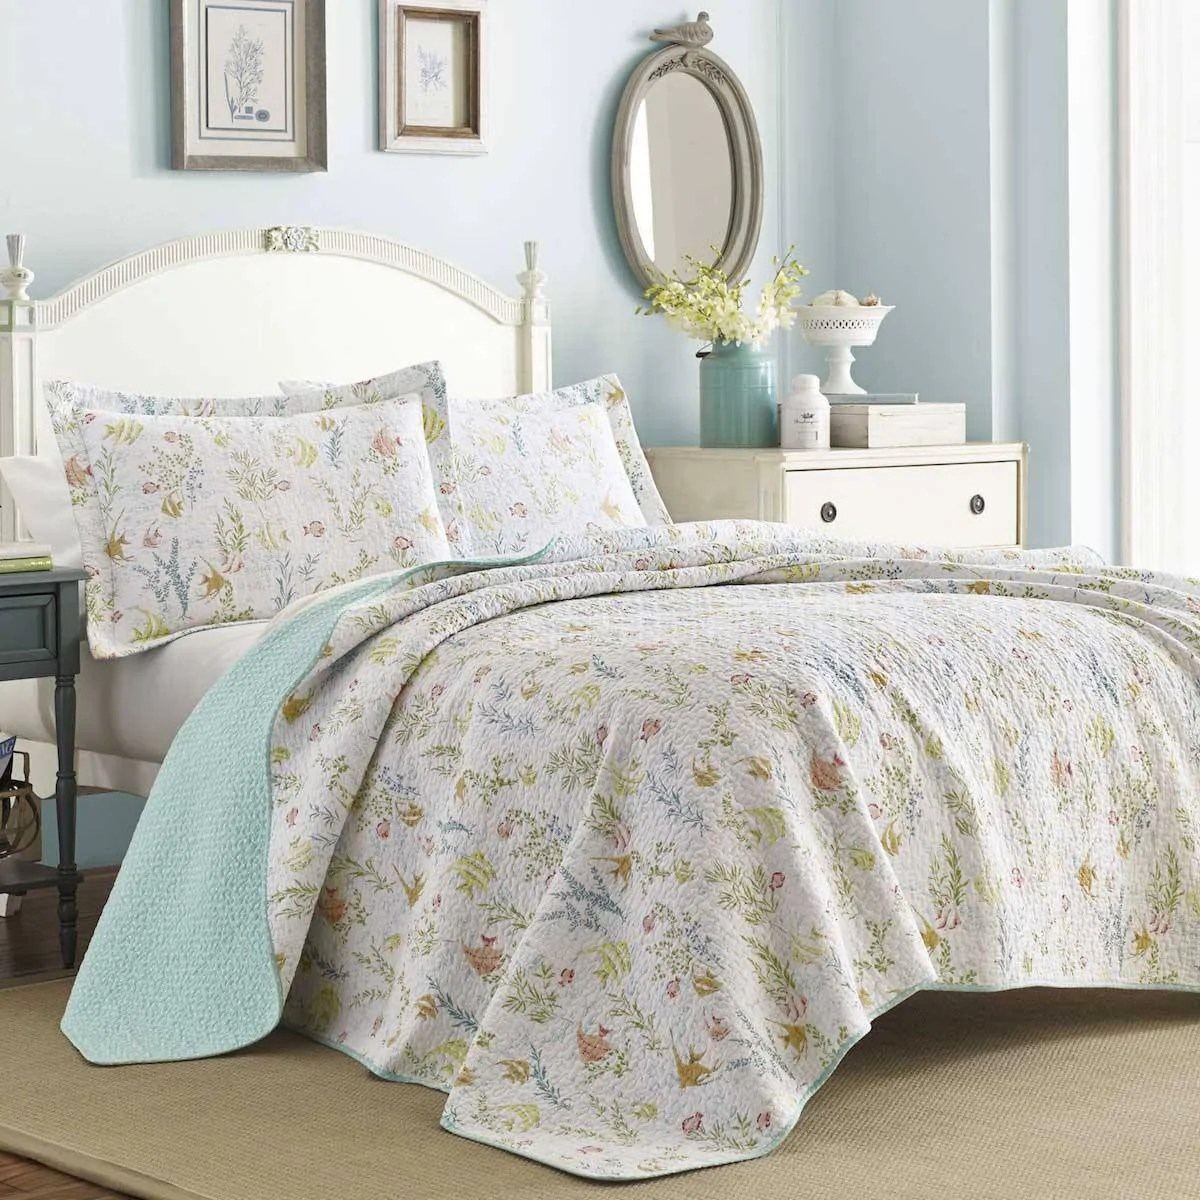 Quilt Sets Laura Ashley Fish Frolic Underwater Garden Quilt Set